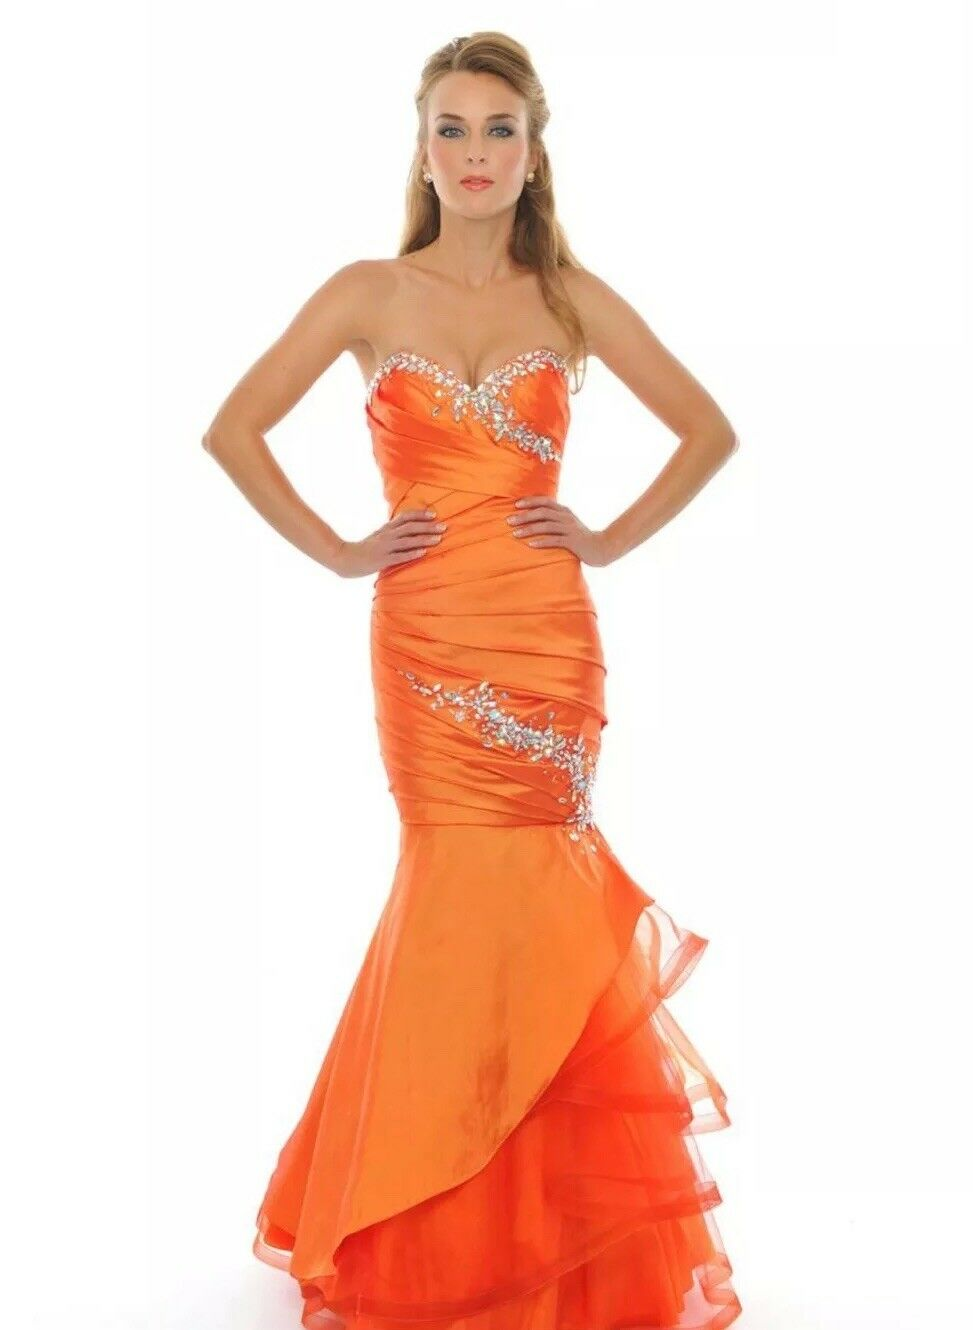 Precious Formals Orange Prom Dress With Lace Up Back - 6 (fits Größes 4-8)